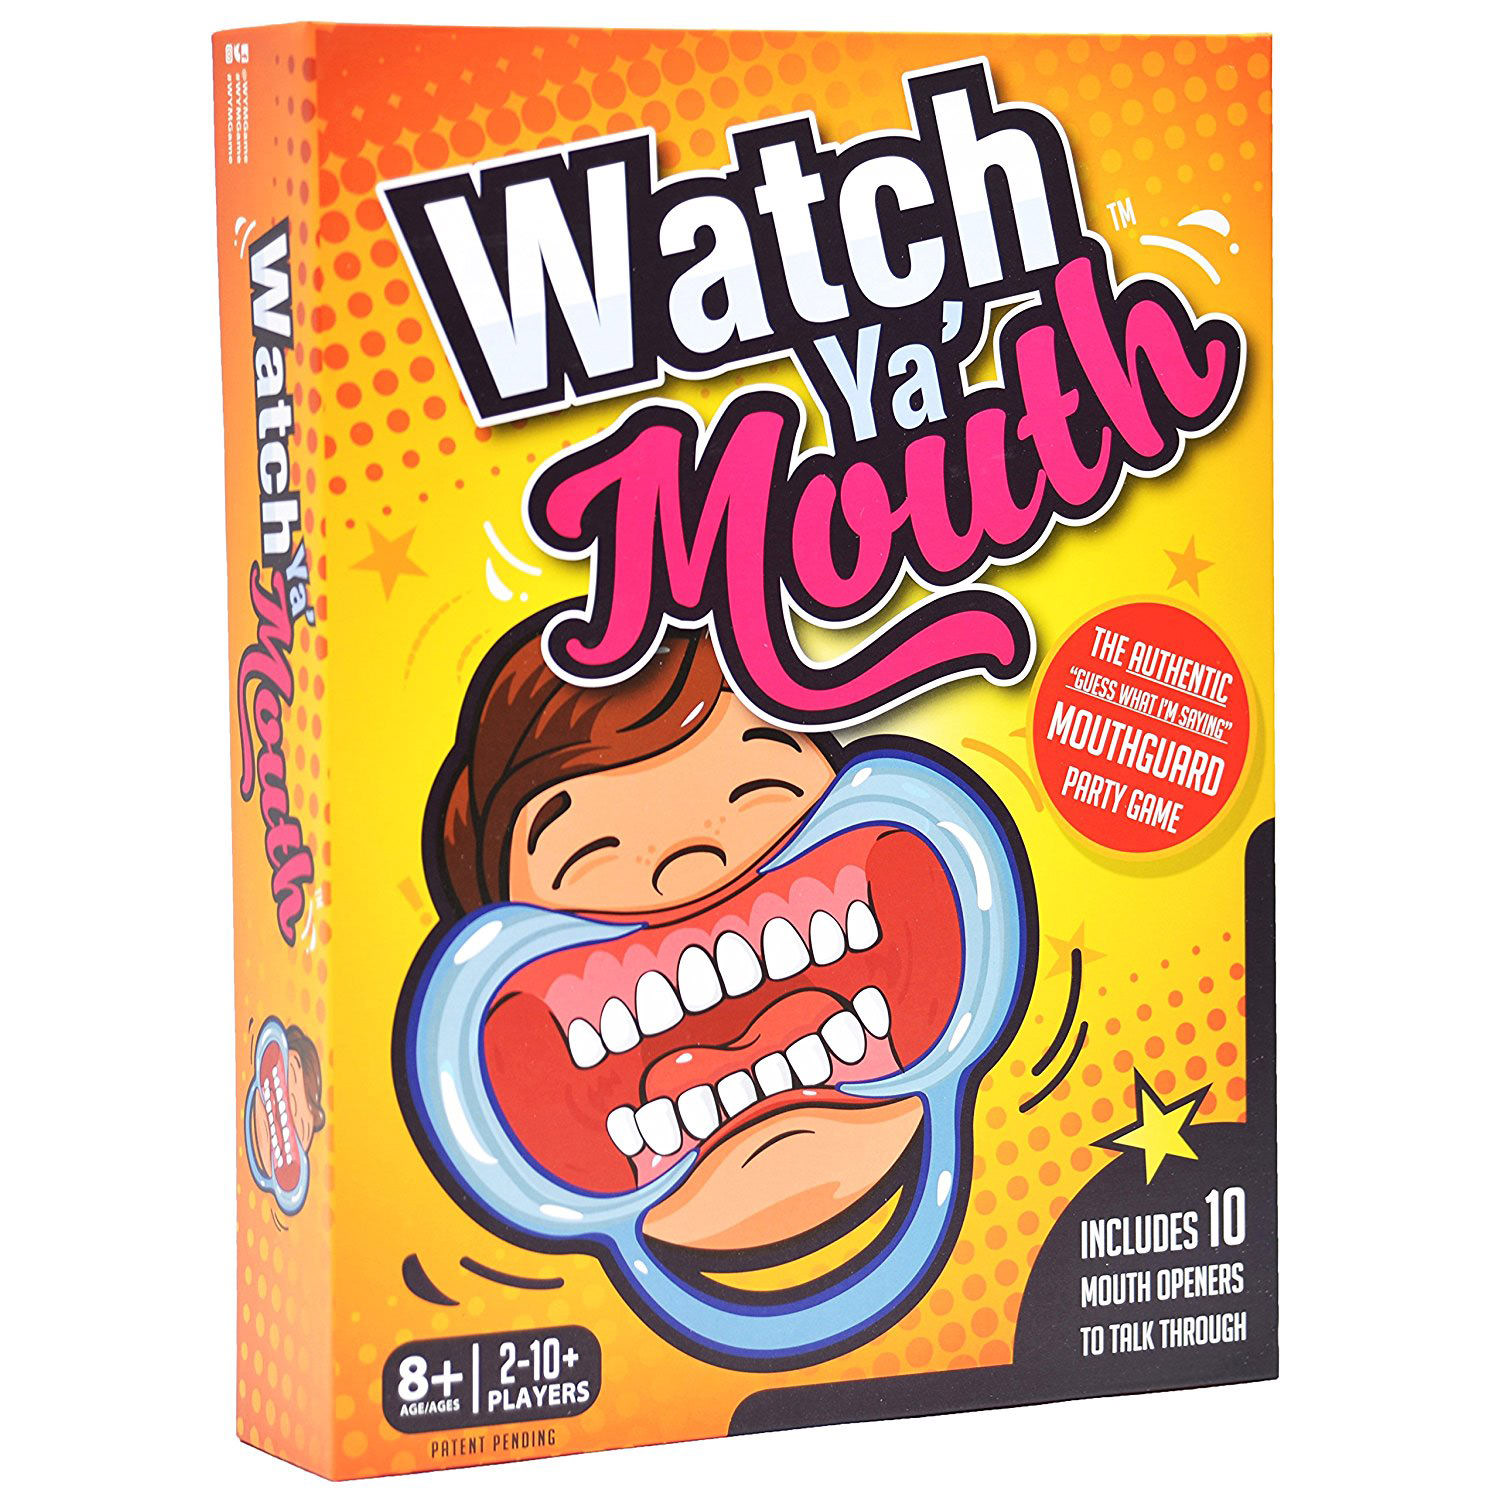 Watch Ya Mouth Mouthguard Party Game At Toys R Us